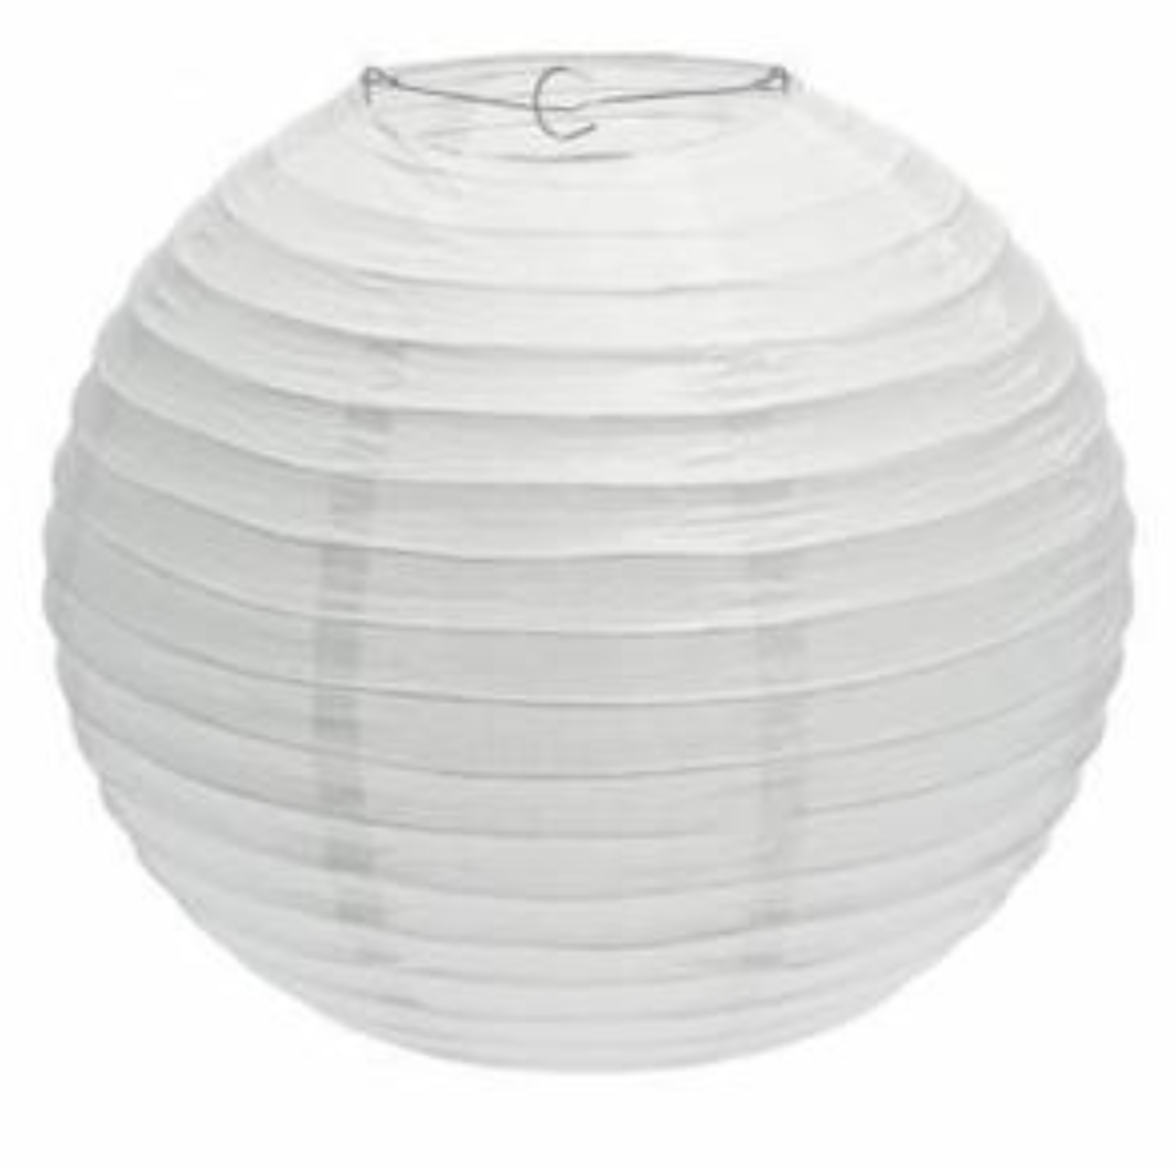 Lanterne-de-papier-16-Lumiy-re-LED-Blanc.png